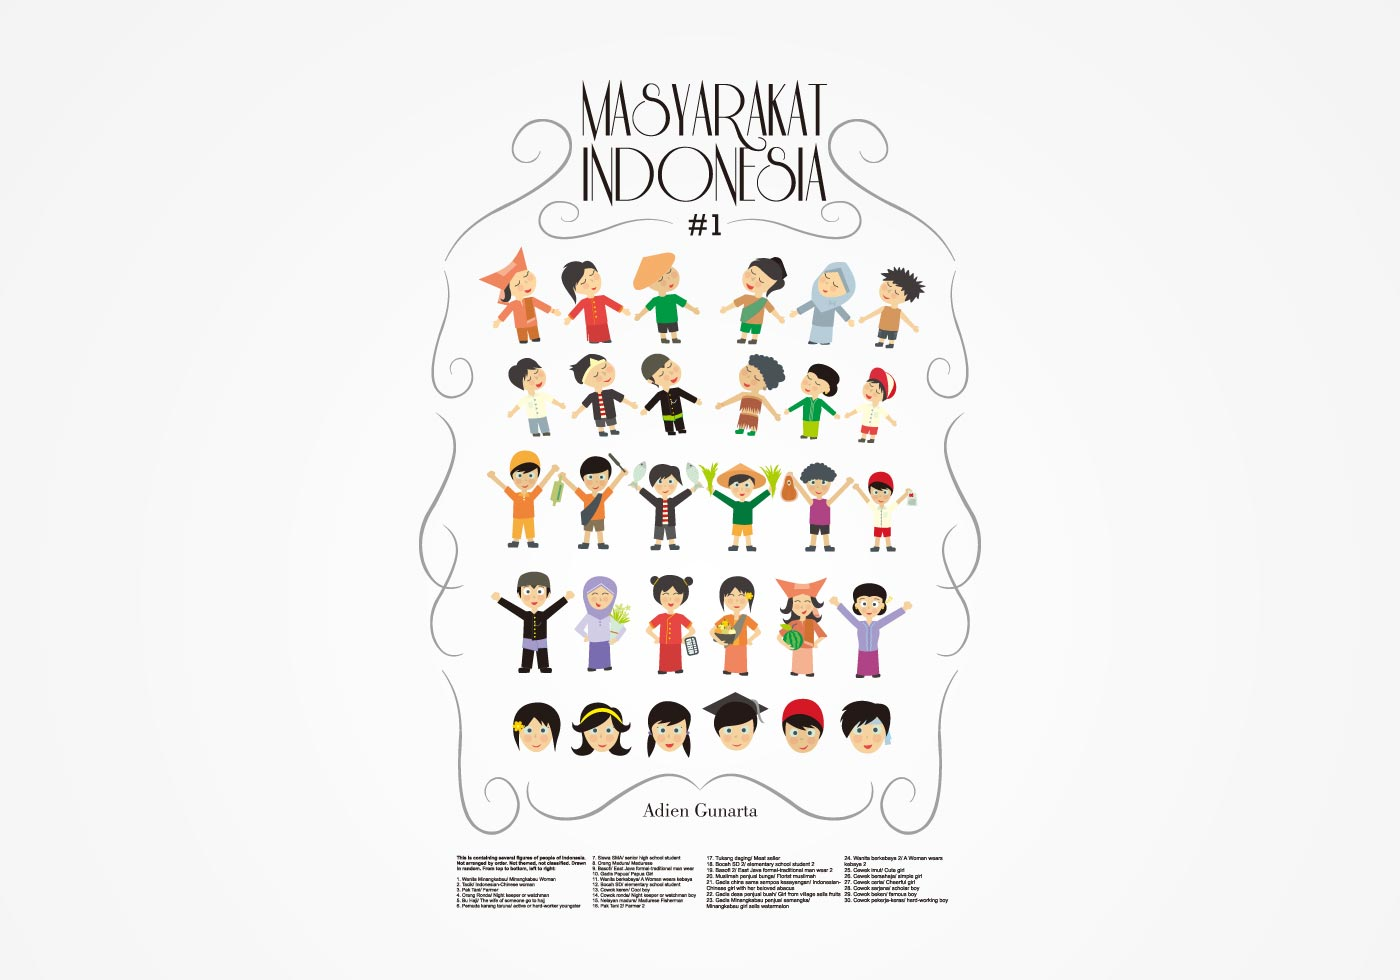 Masyarakat Indonesia  Download Free Vector Art, Stock Graphics  Images